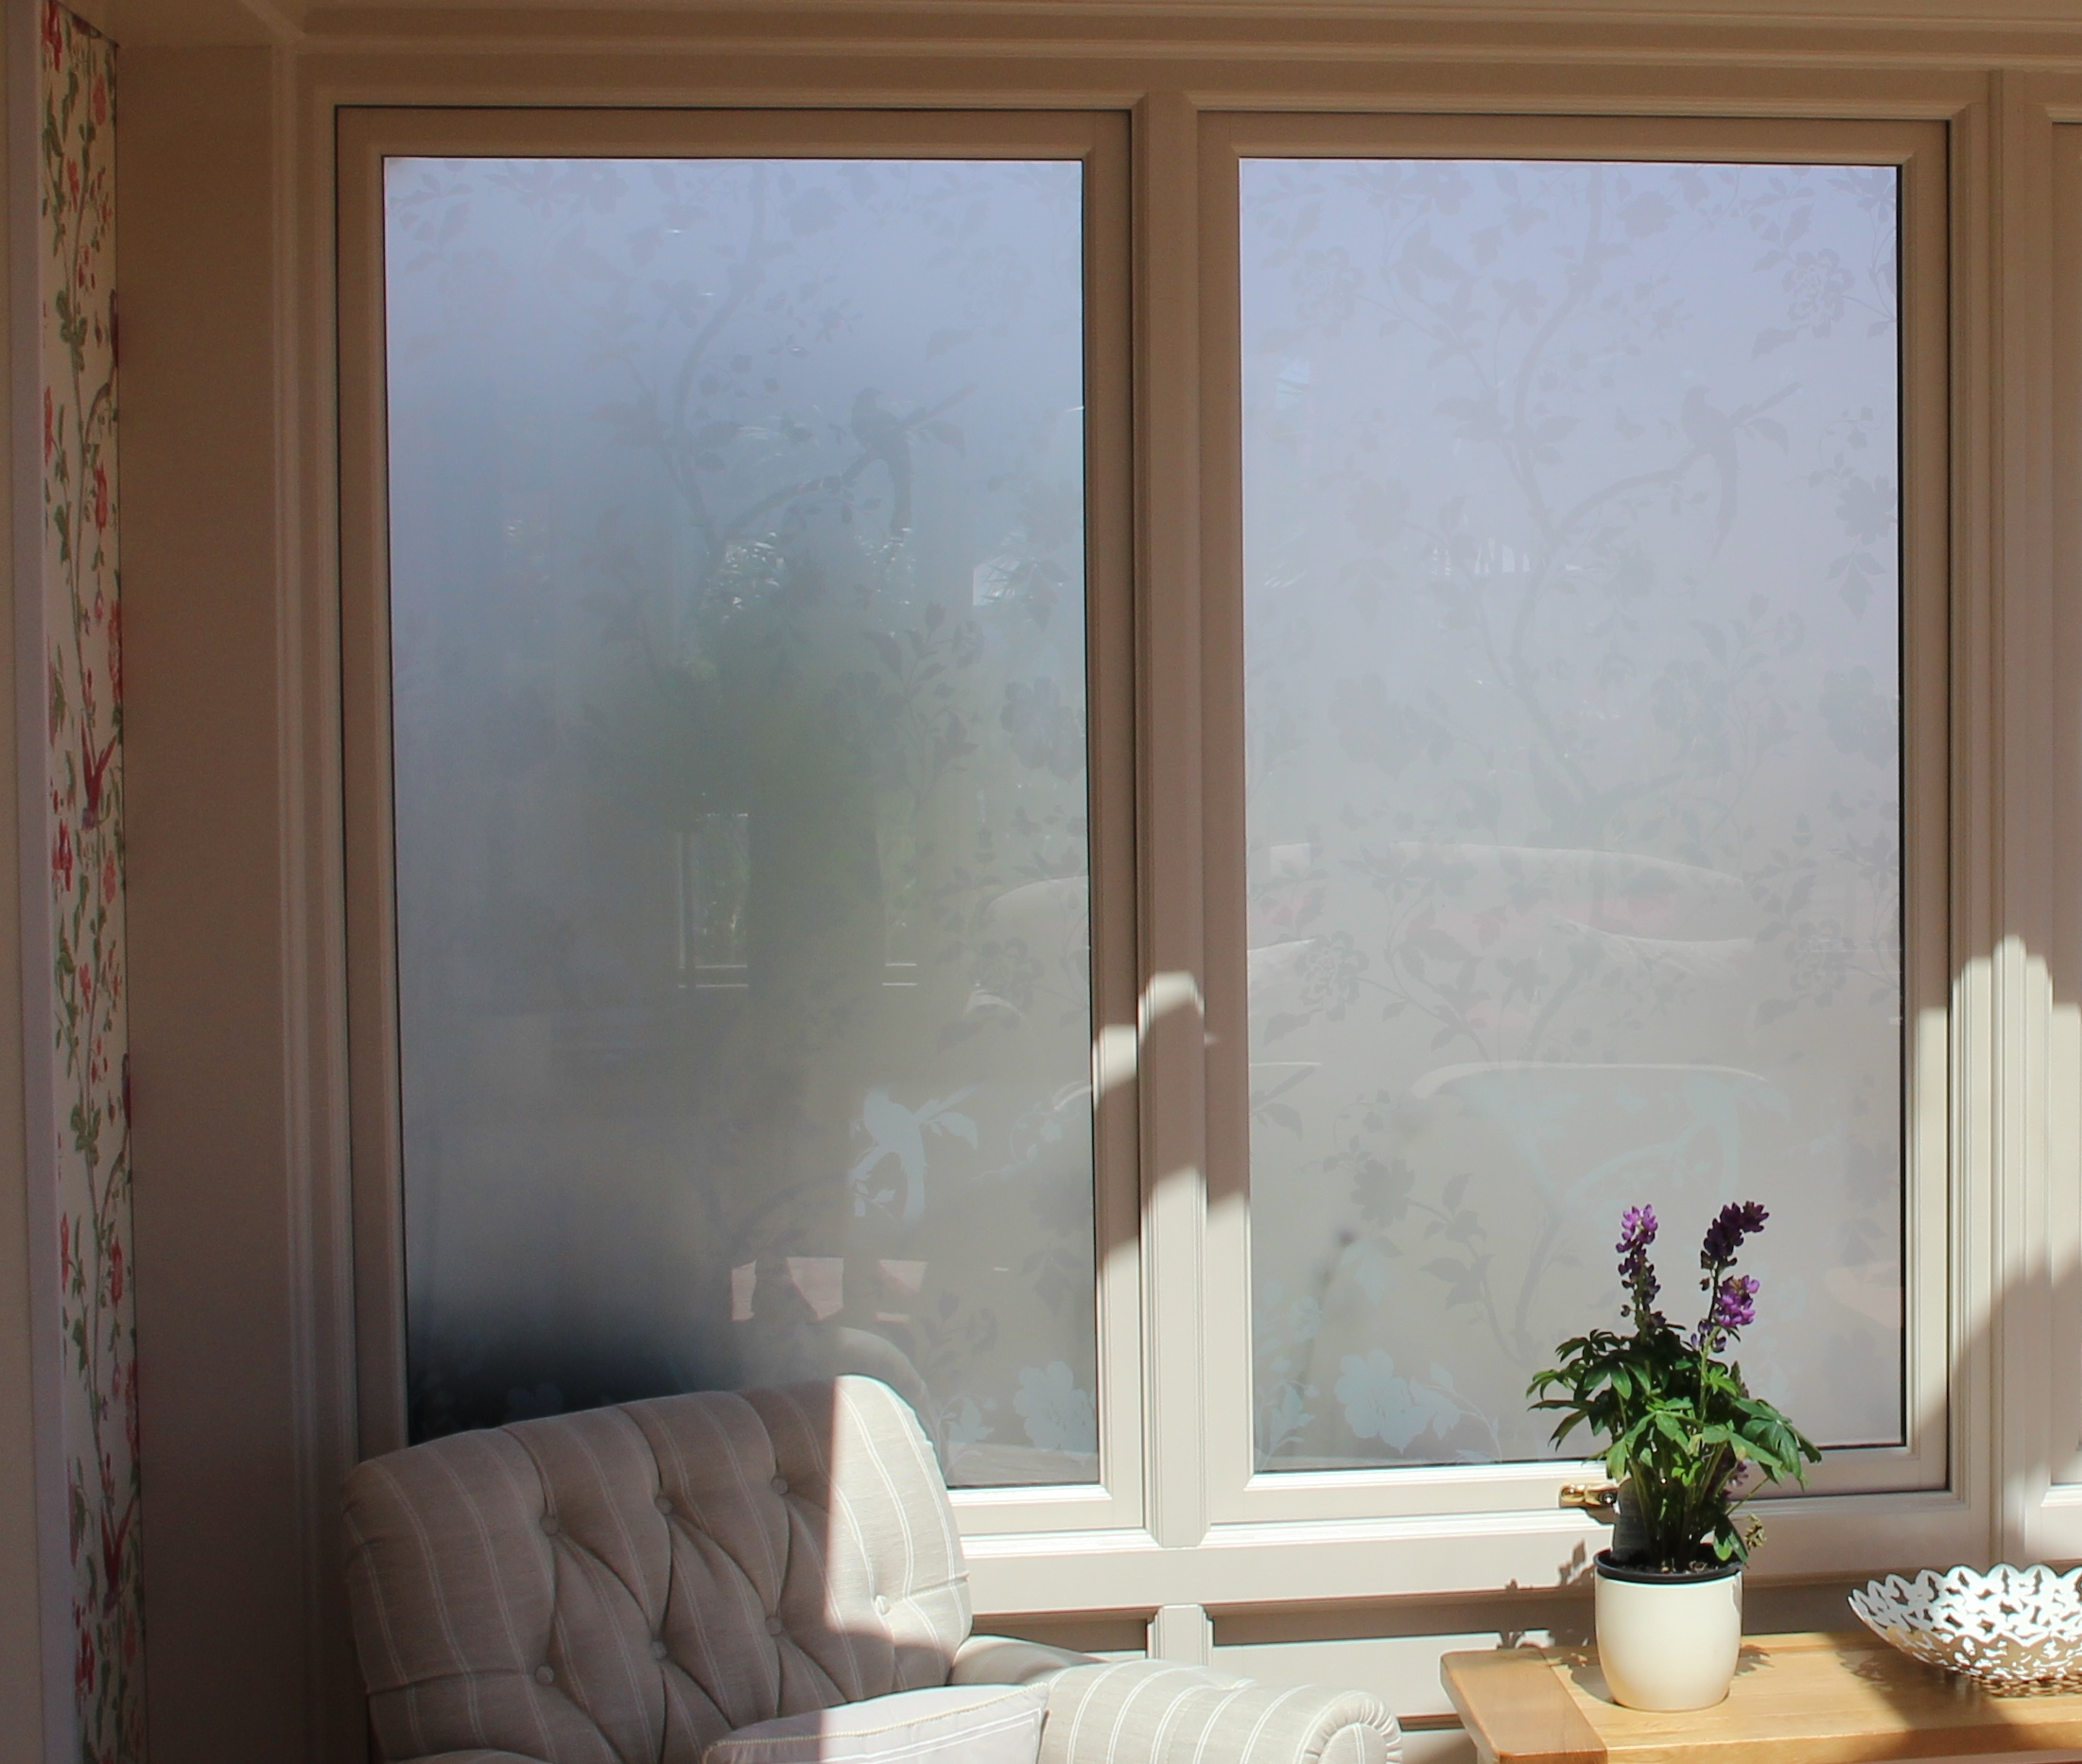 Laura Ashley glass in an Anglian Conservatory